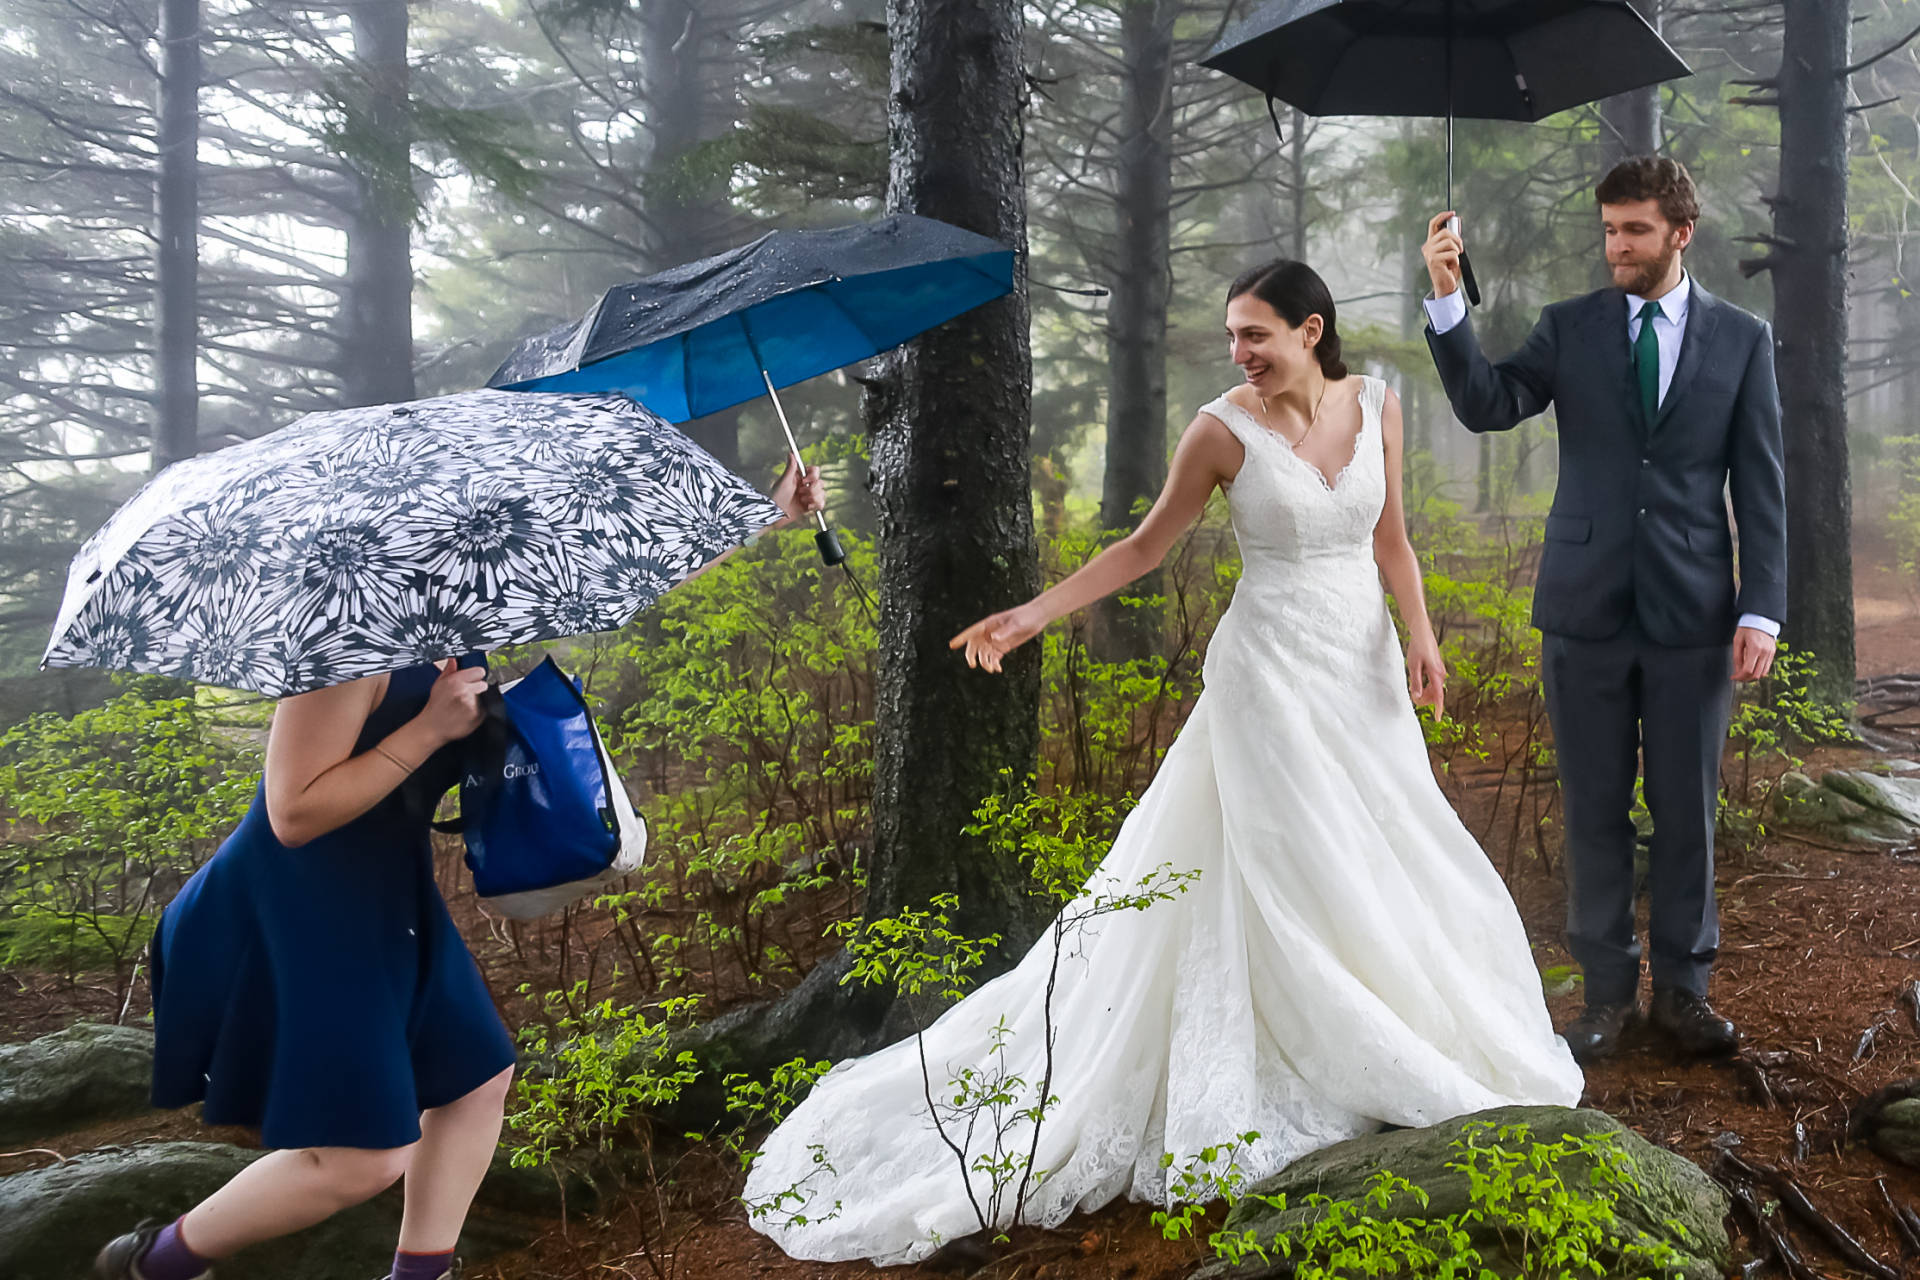 Black Balsam Knob, North Carolina Elopement Ceremony Picture | The maid of honor delivers an umbrella to the bride